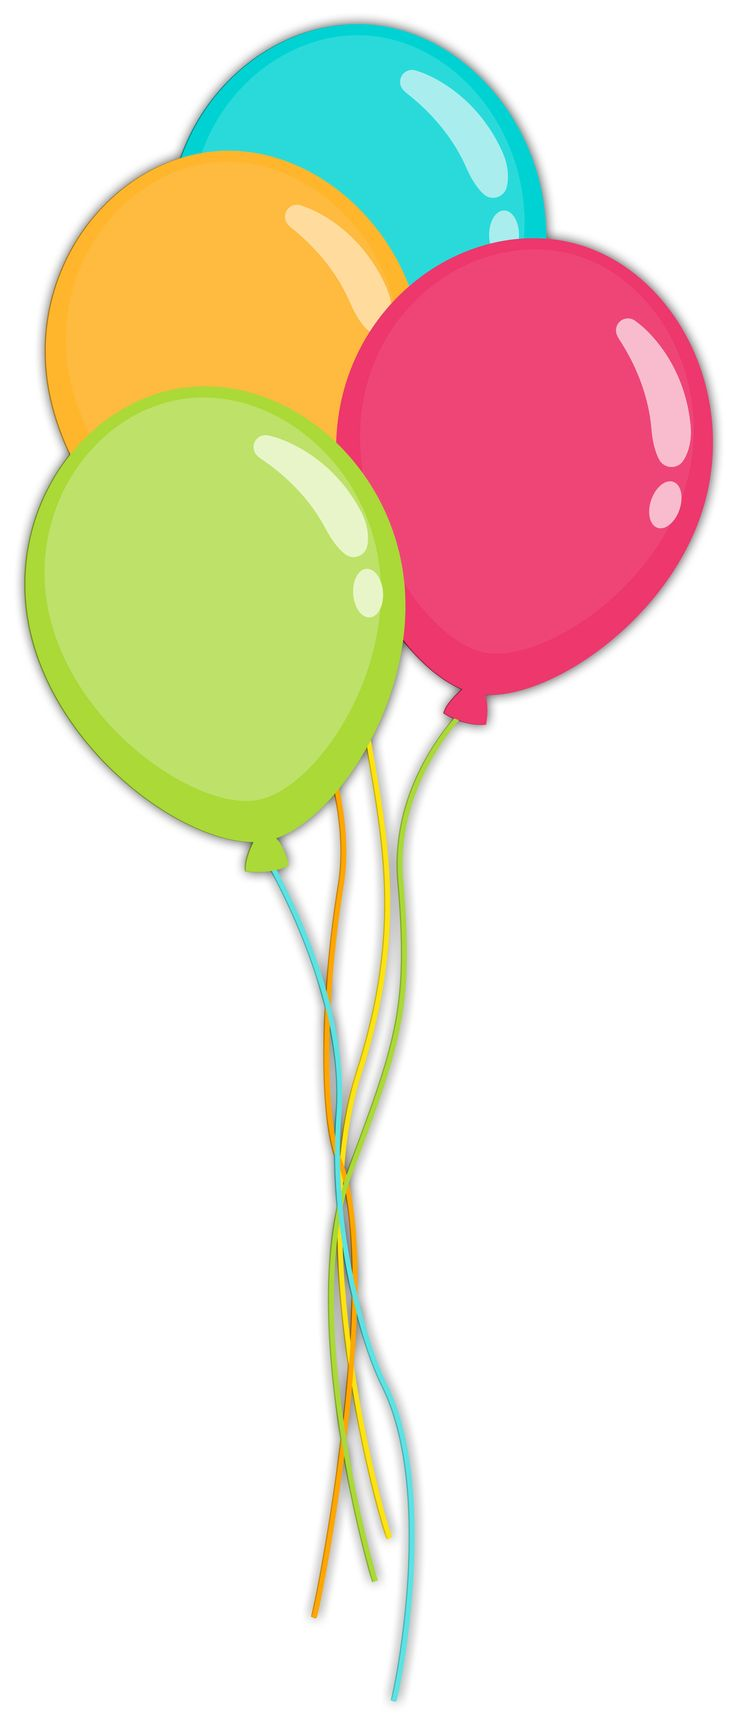 736x1726 Balloons Single Balloon Clipart Free Images